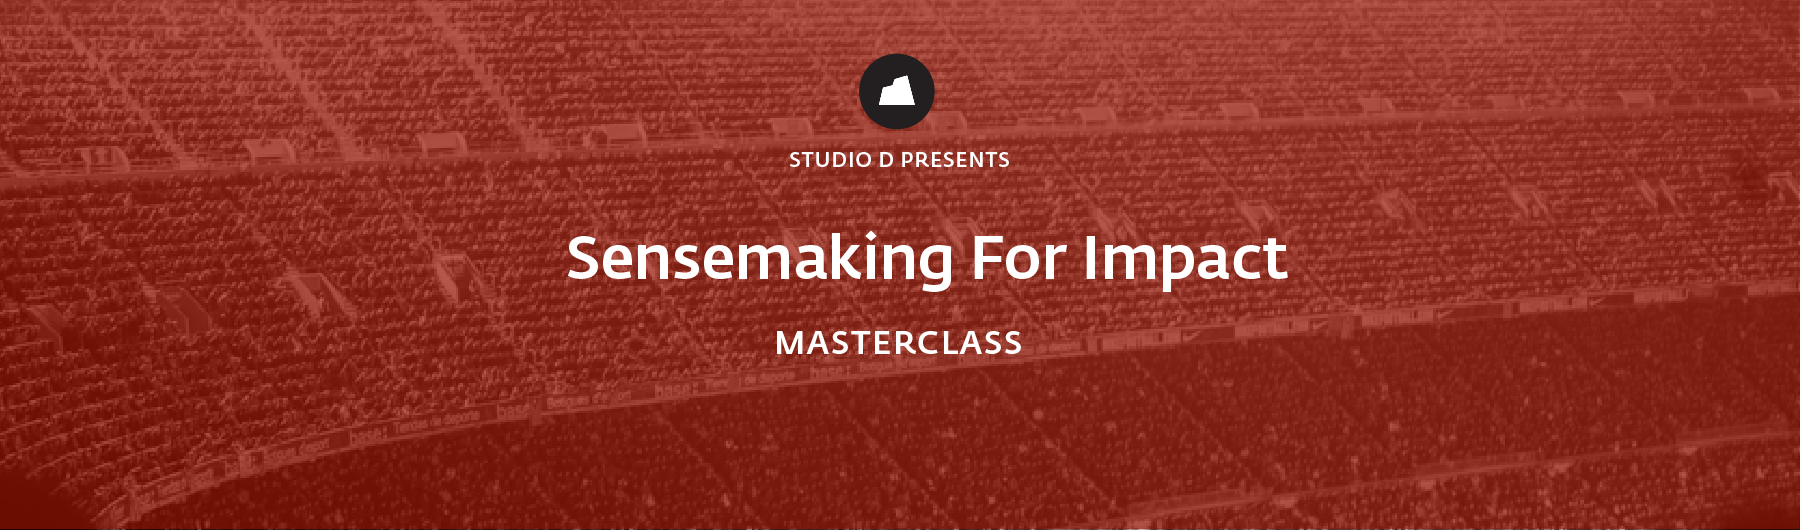 Sensemaking For Impact Masterclass, 19 March 2020, Wellington